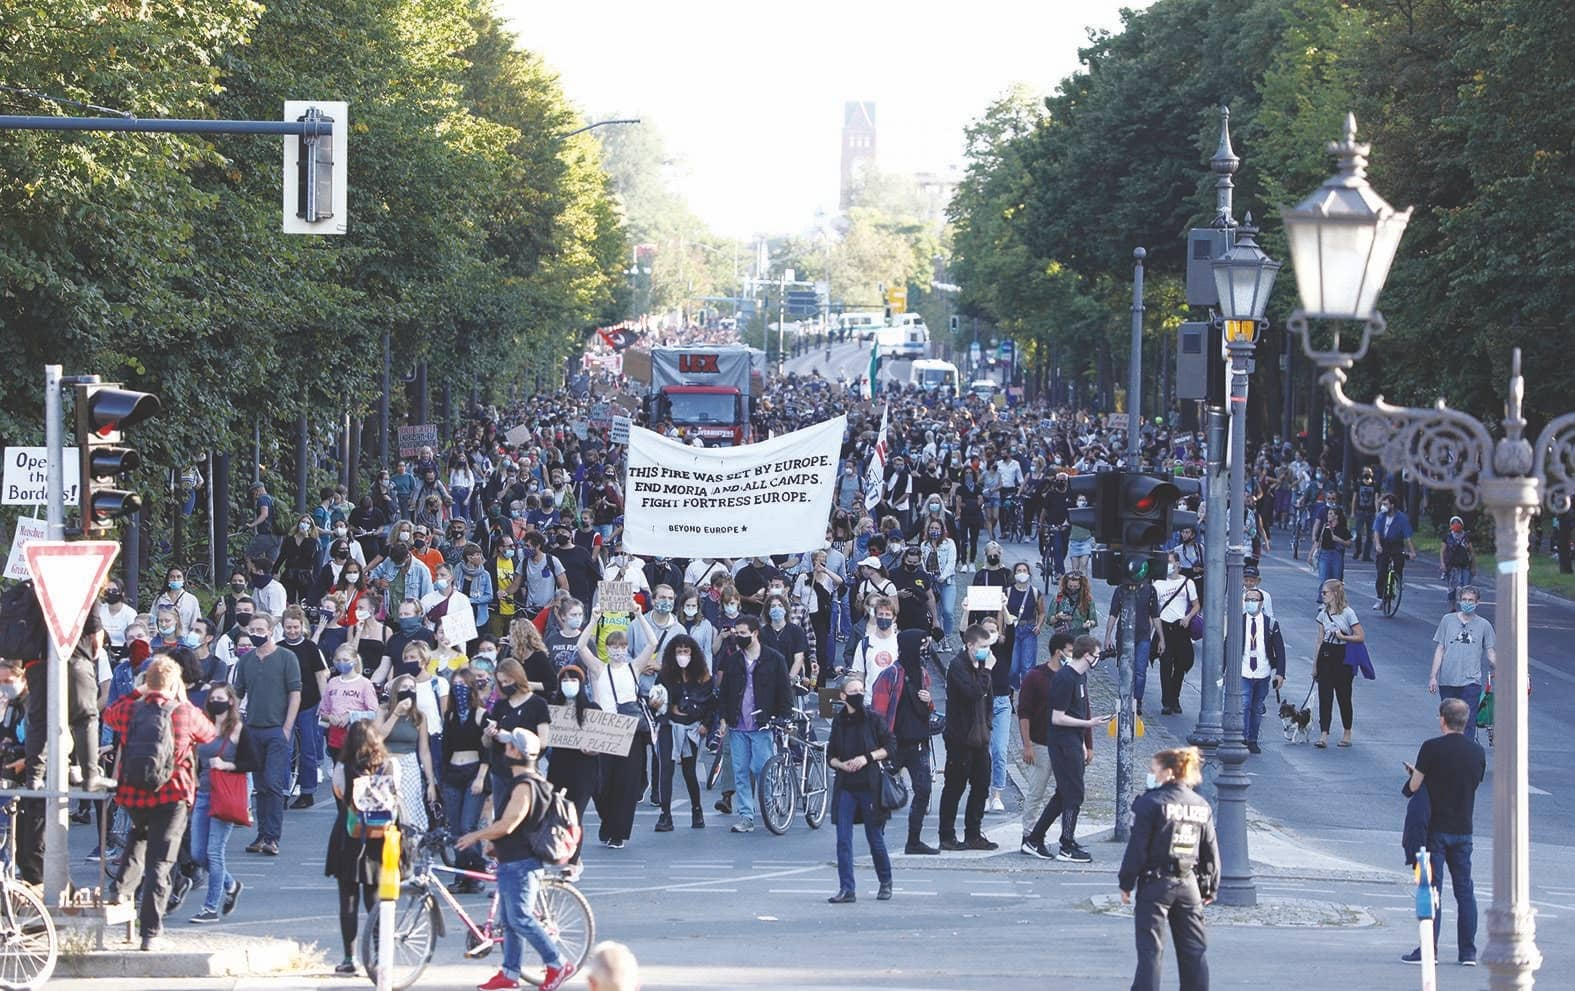 Thousands March In Germany Urging EU To Take In Refugees